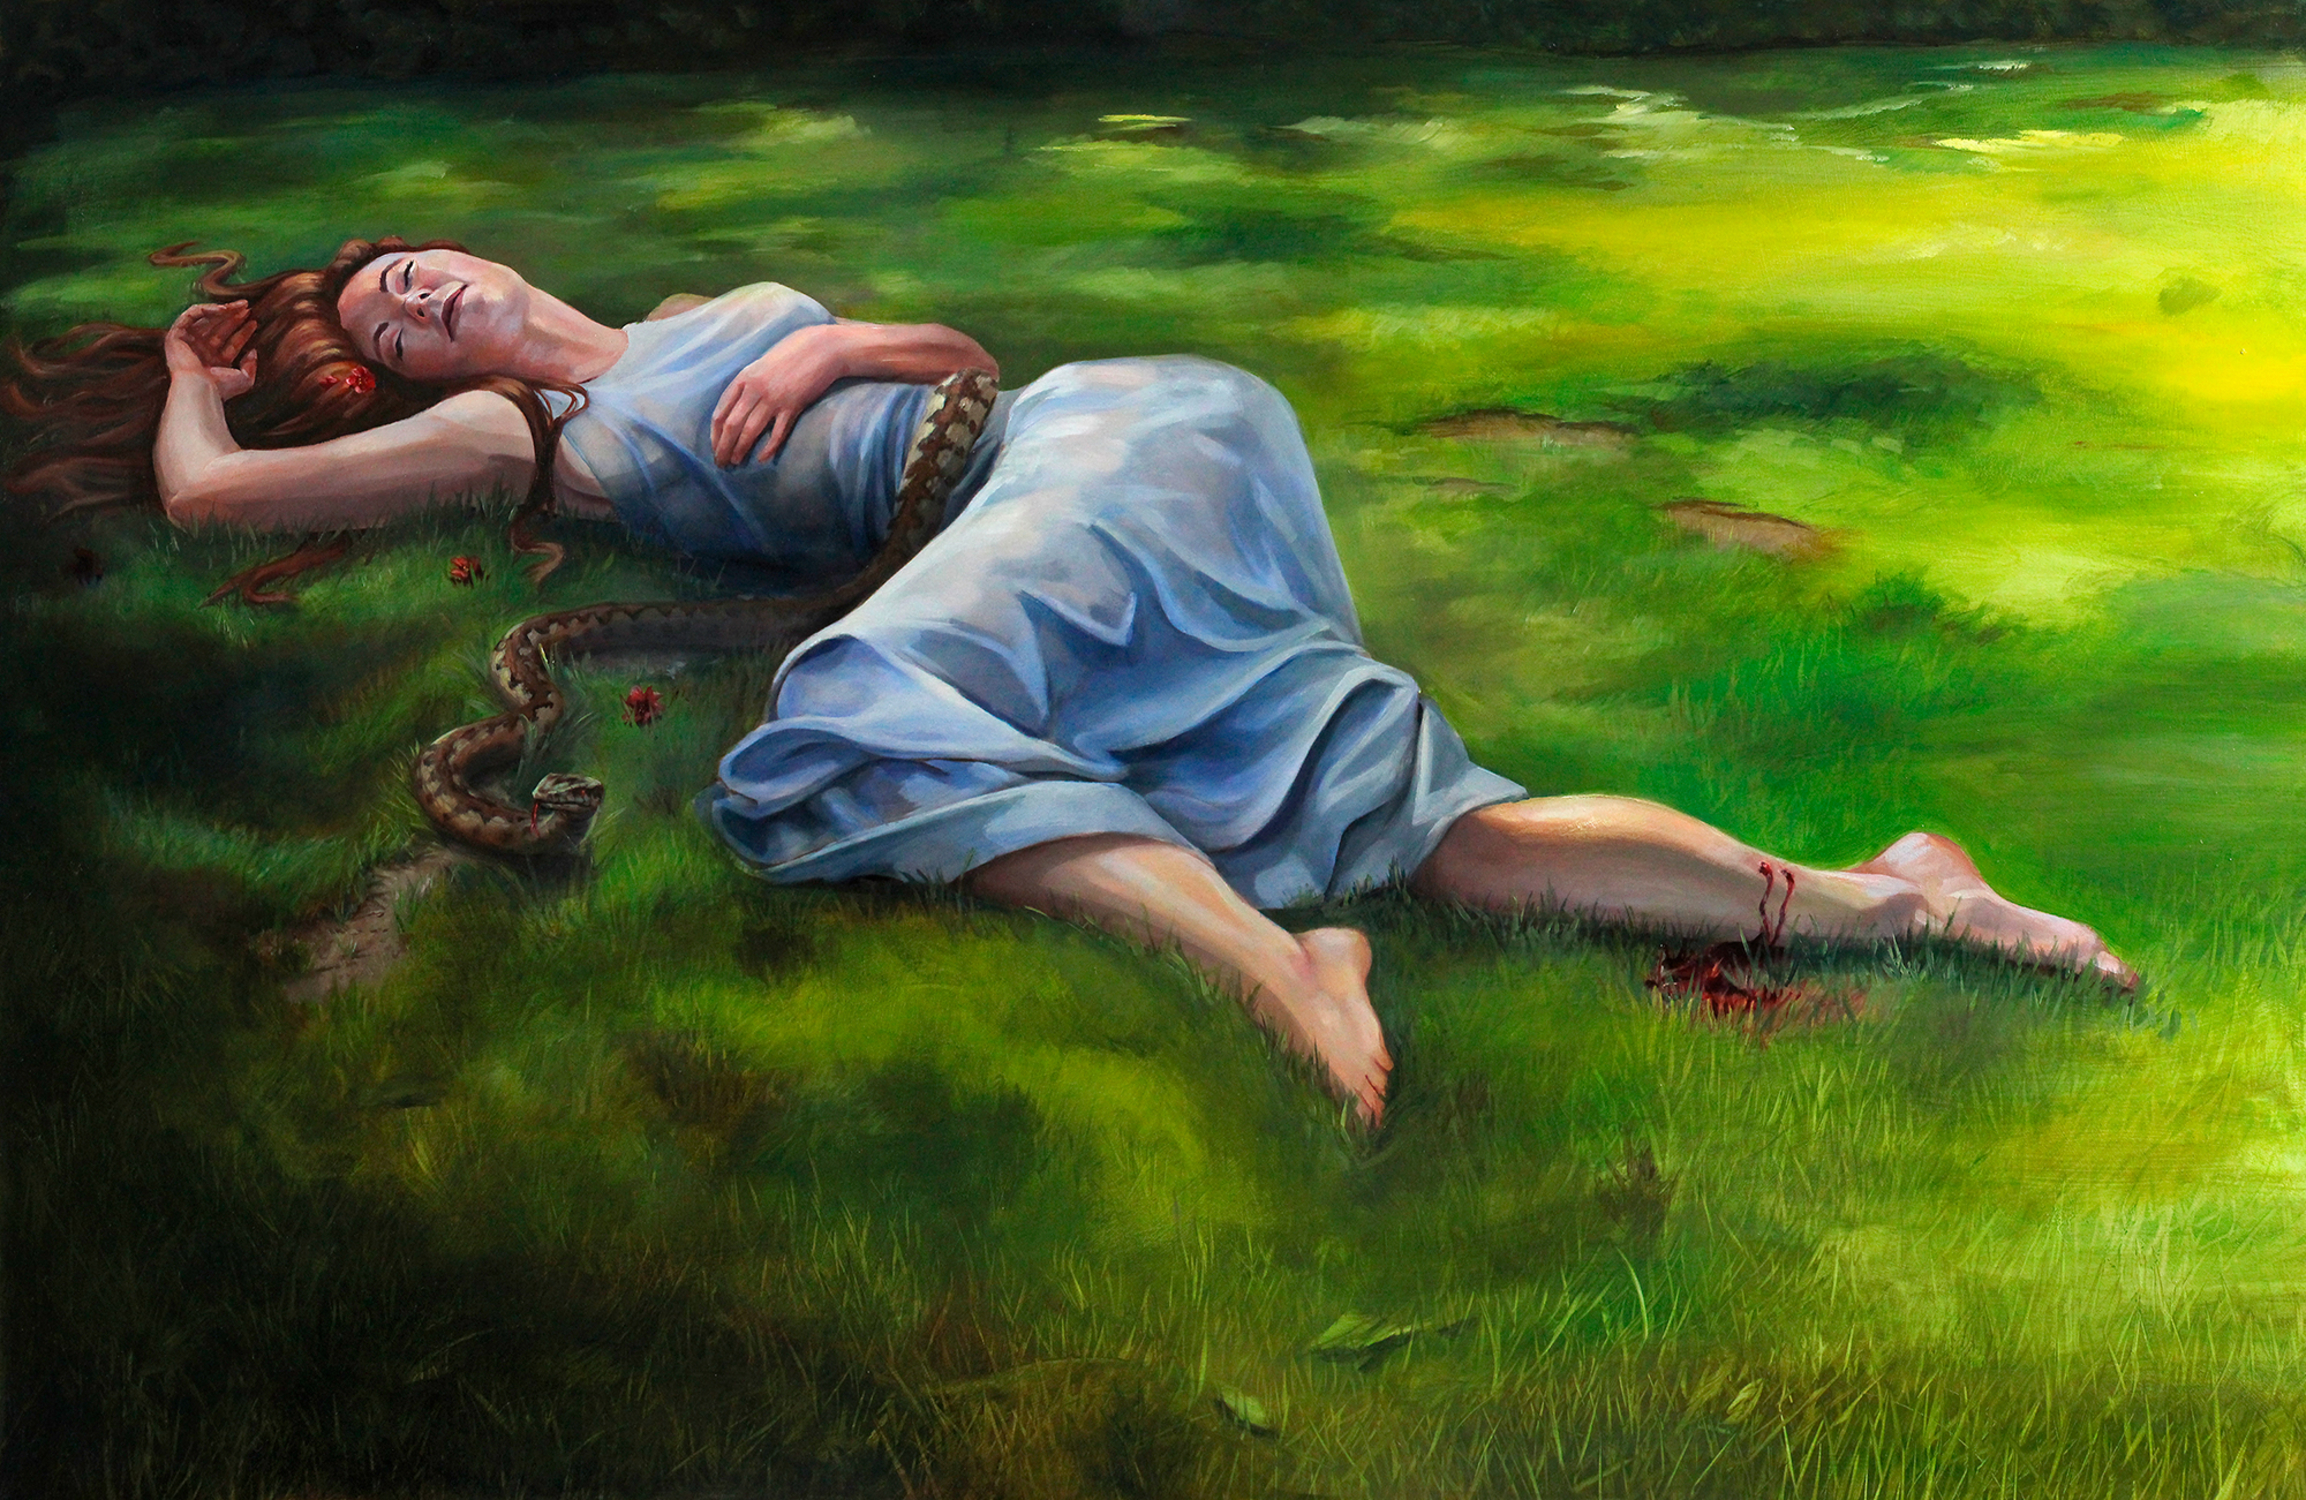 The Tragedy or Eurydice Artwork by Candice Dailey